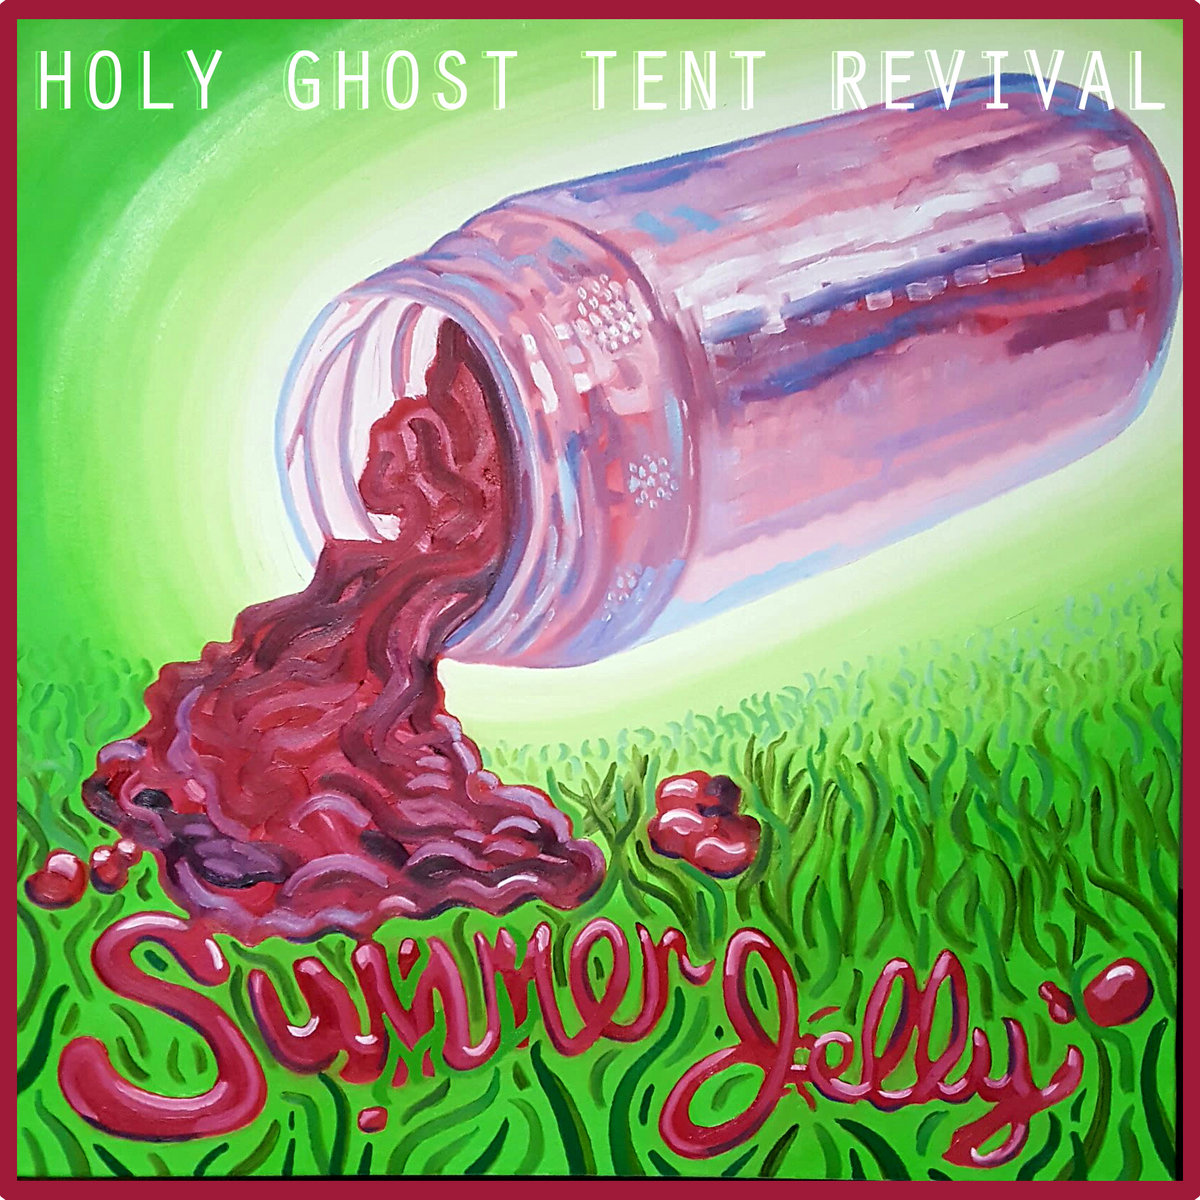 by Holy Ghost Tent Revival  sc 1 st  Bandc& & Holy Ghost Tent Revival